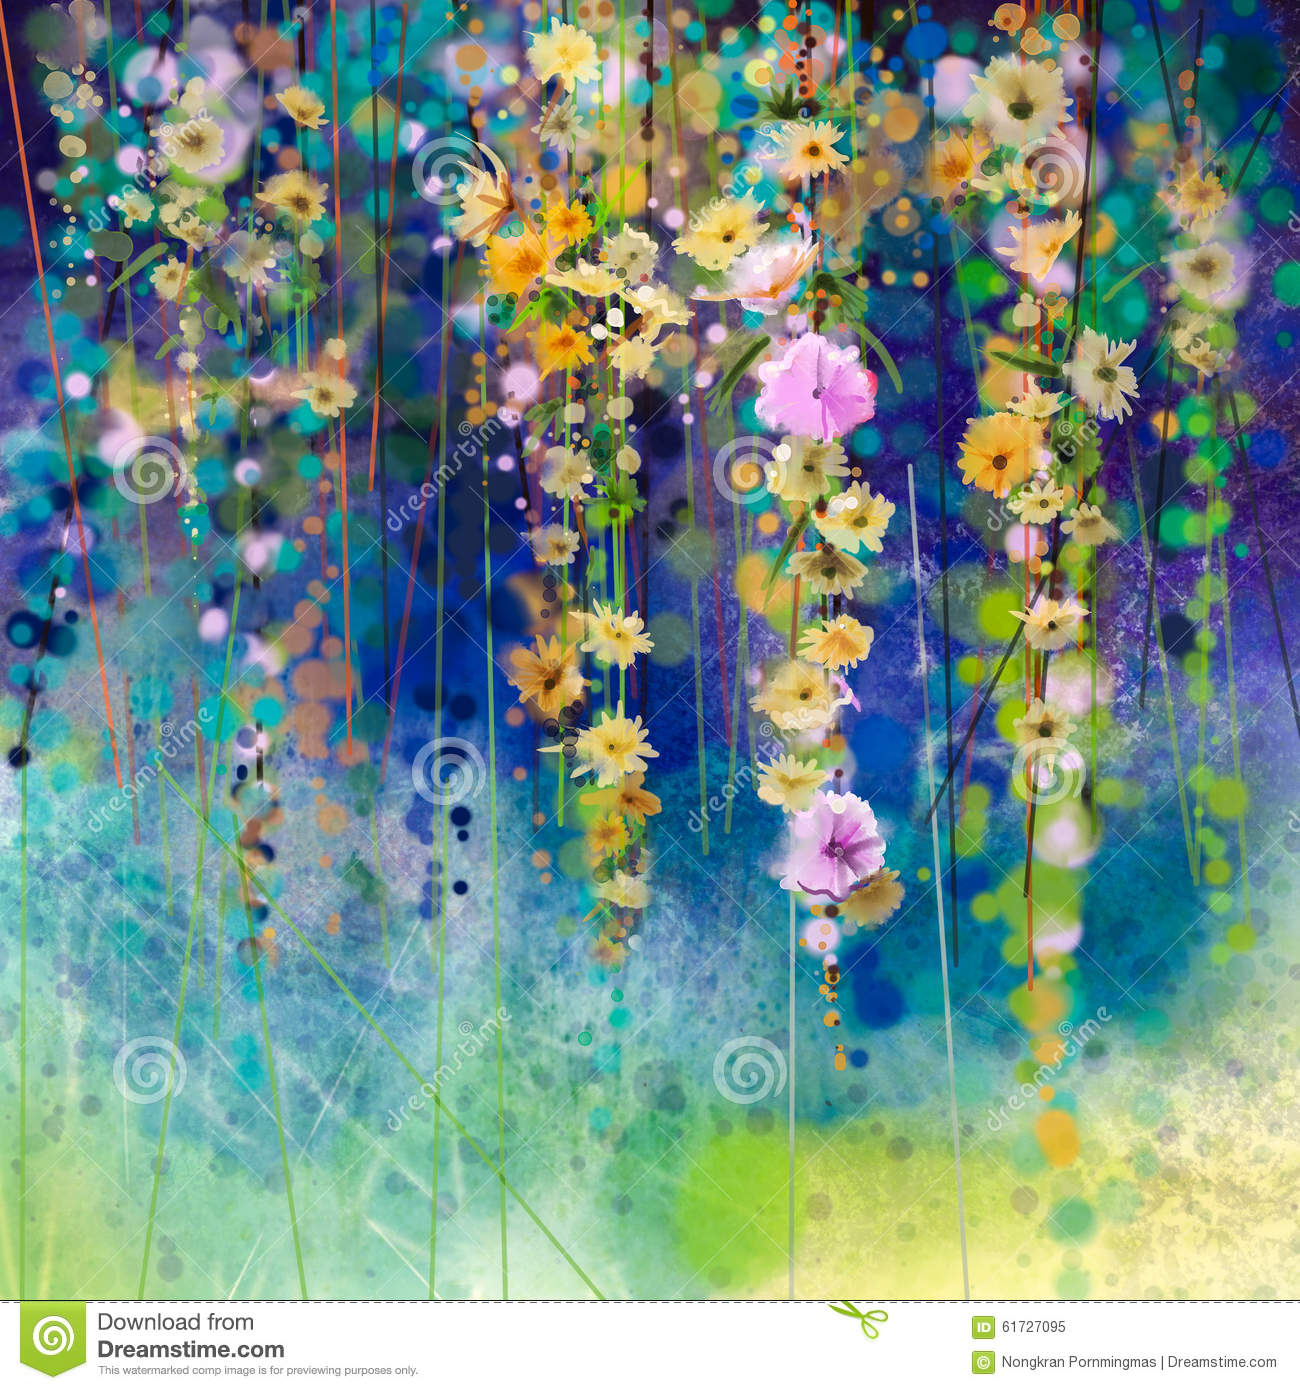 Download Abstract Floral Watercolor Painting Spring Flower Seasonal Nature Background Stock Illustration